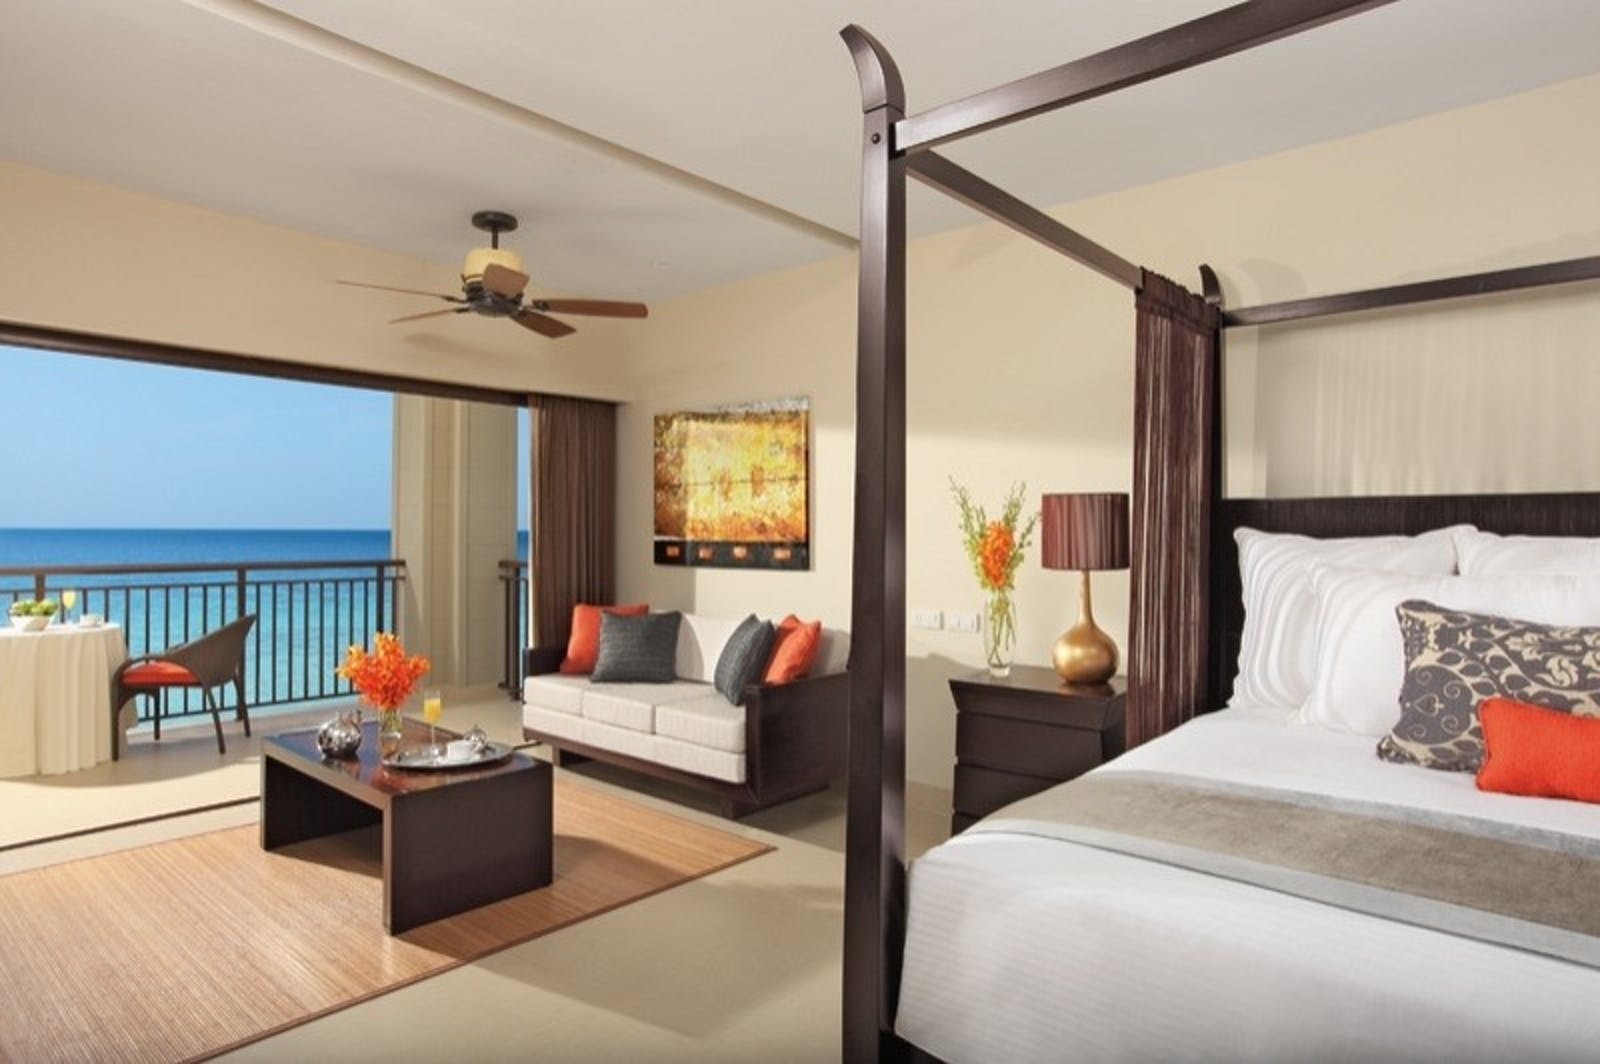 Master Suite at Secrets Wild Orchid Montego Bay, Jamaica